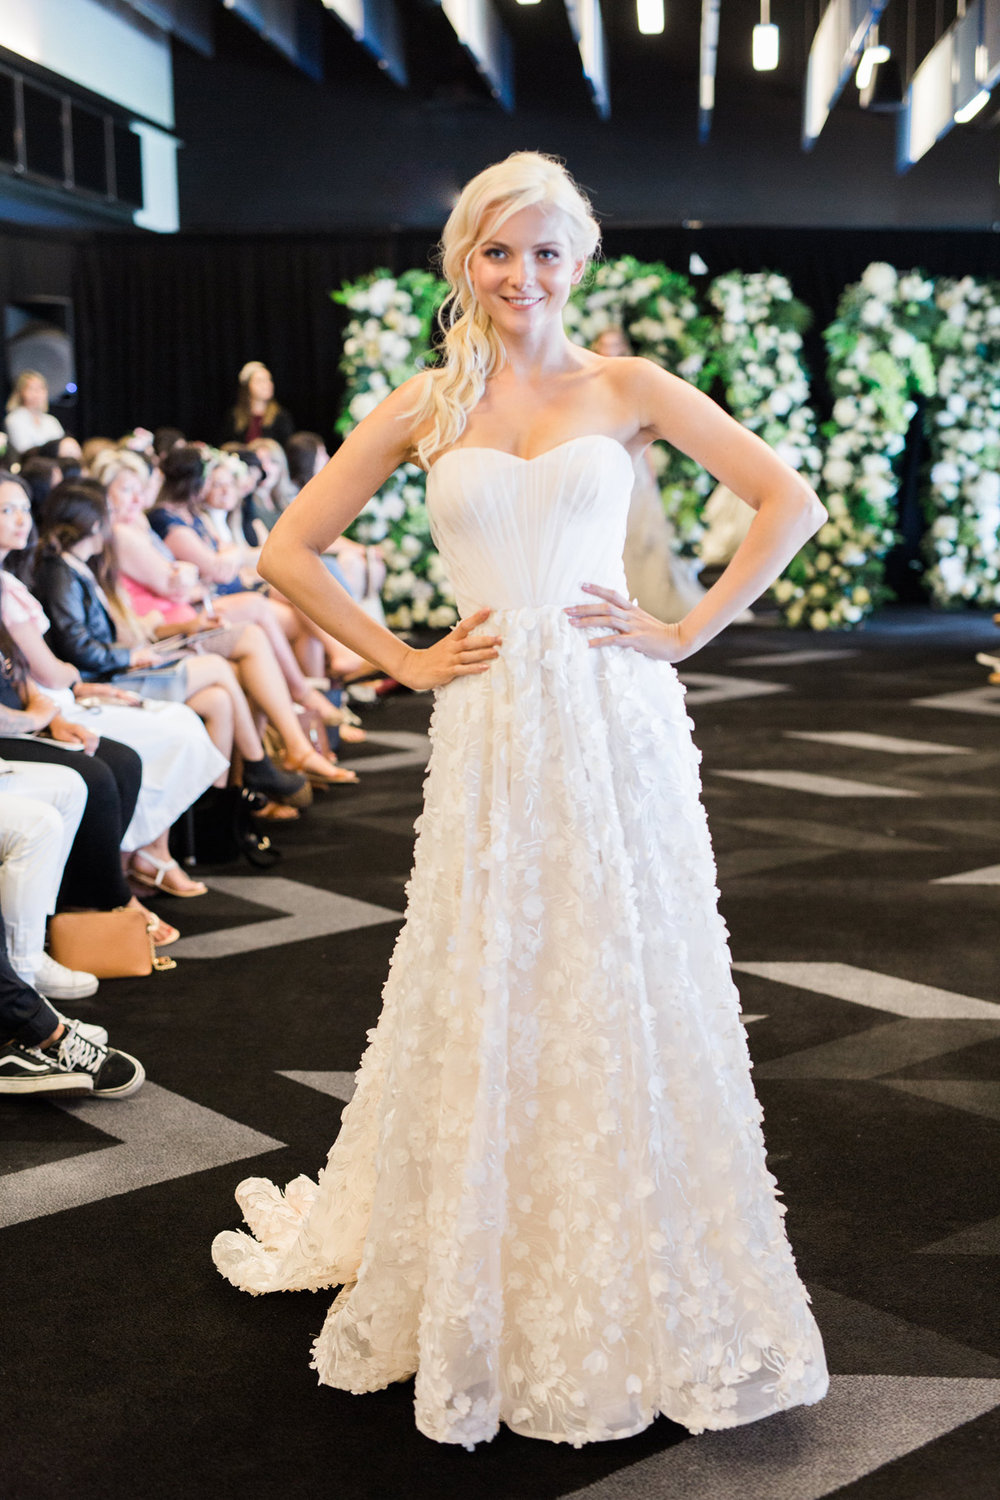 Love-Wedding-Festival-Sydney-Wedding-Gown-Angela-Osagie-5.jpg